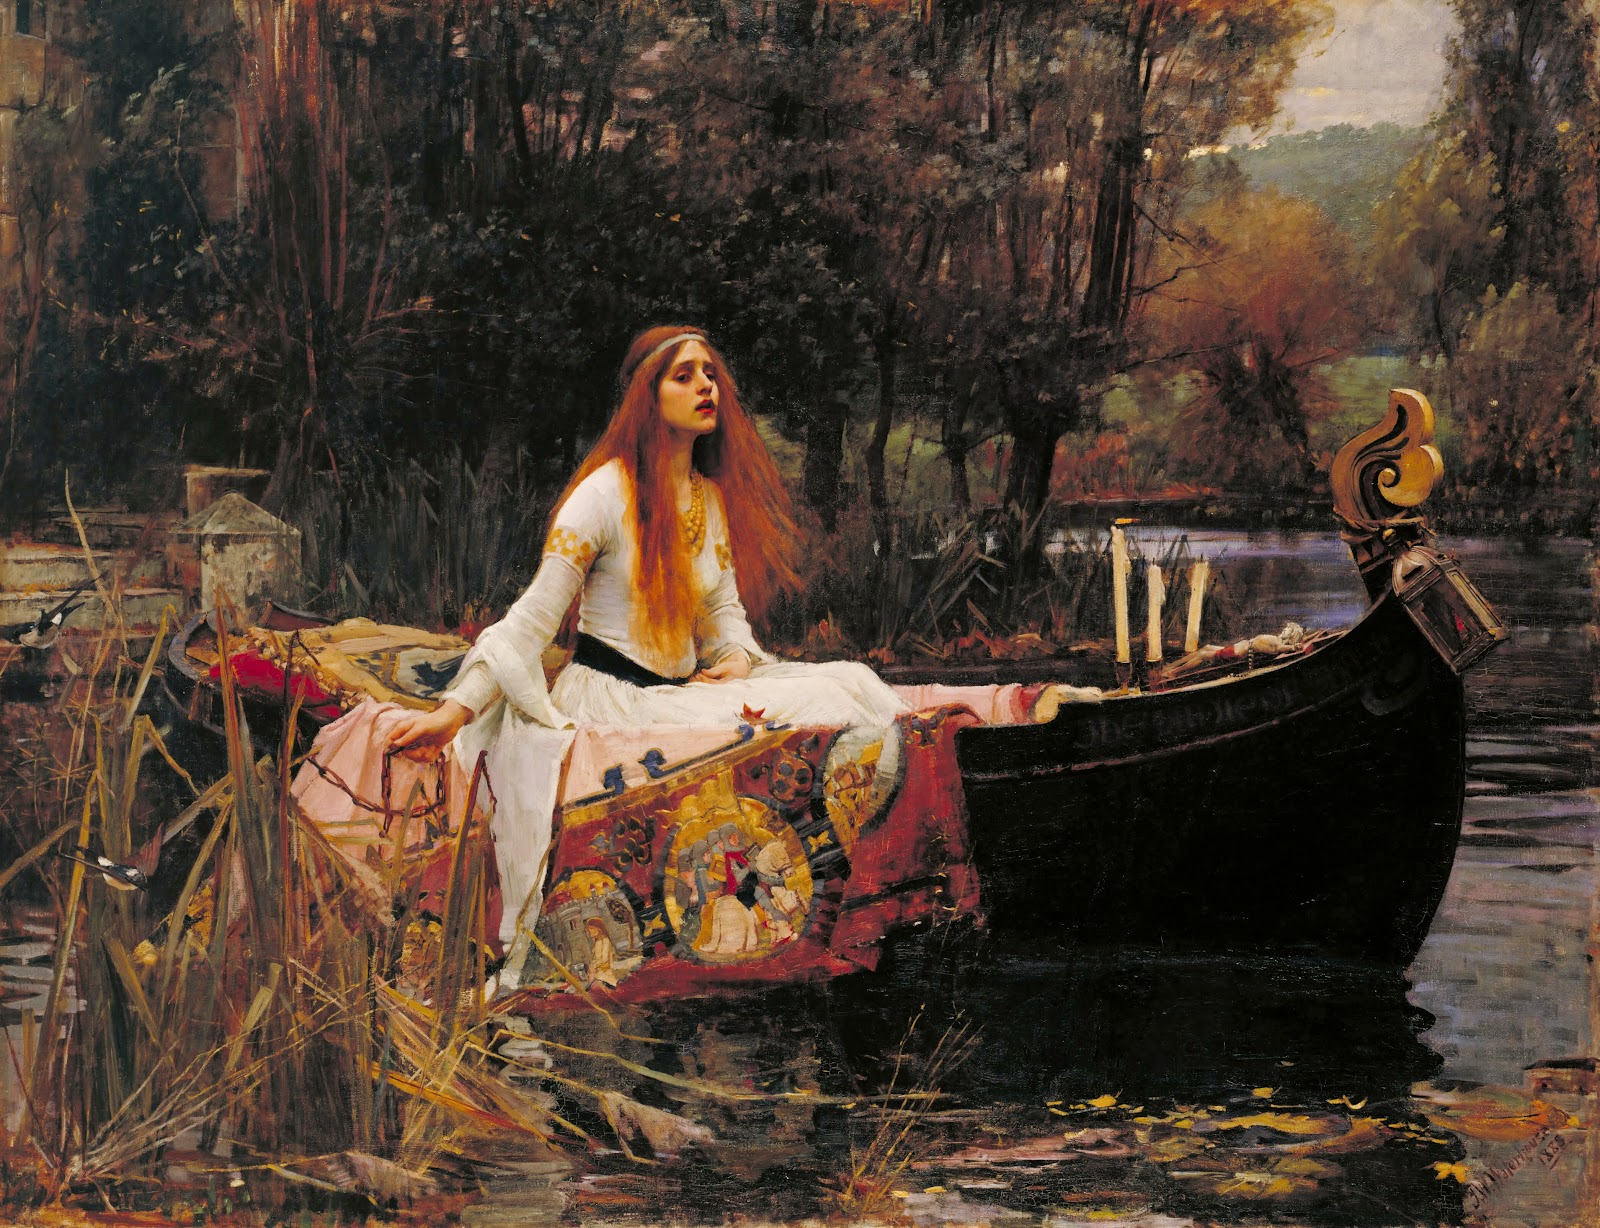 John William Waterhouse The Lady of Shalottjpg